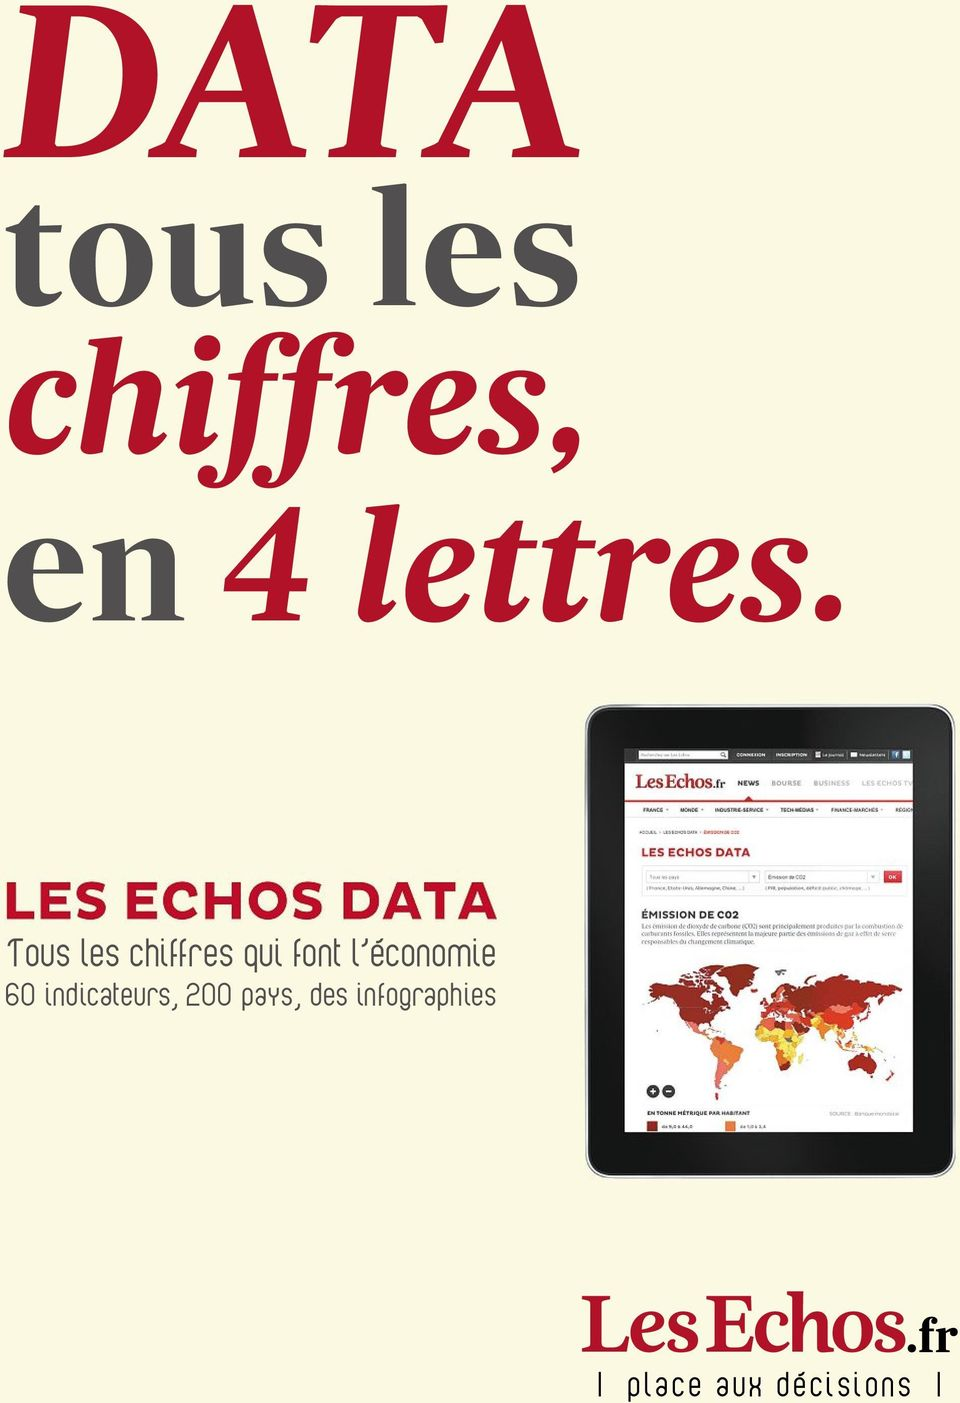 l'économie 60 indicateurs, 200